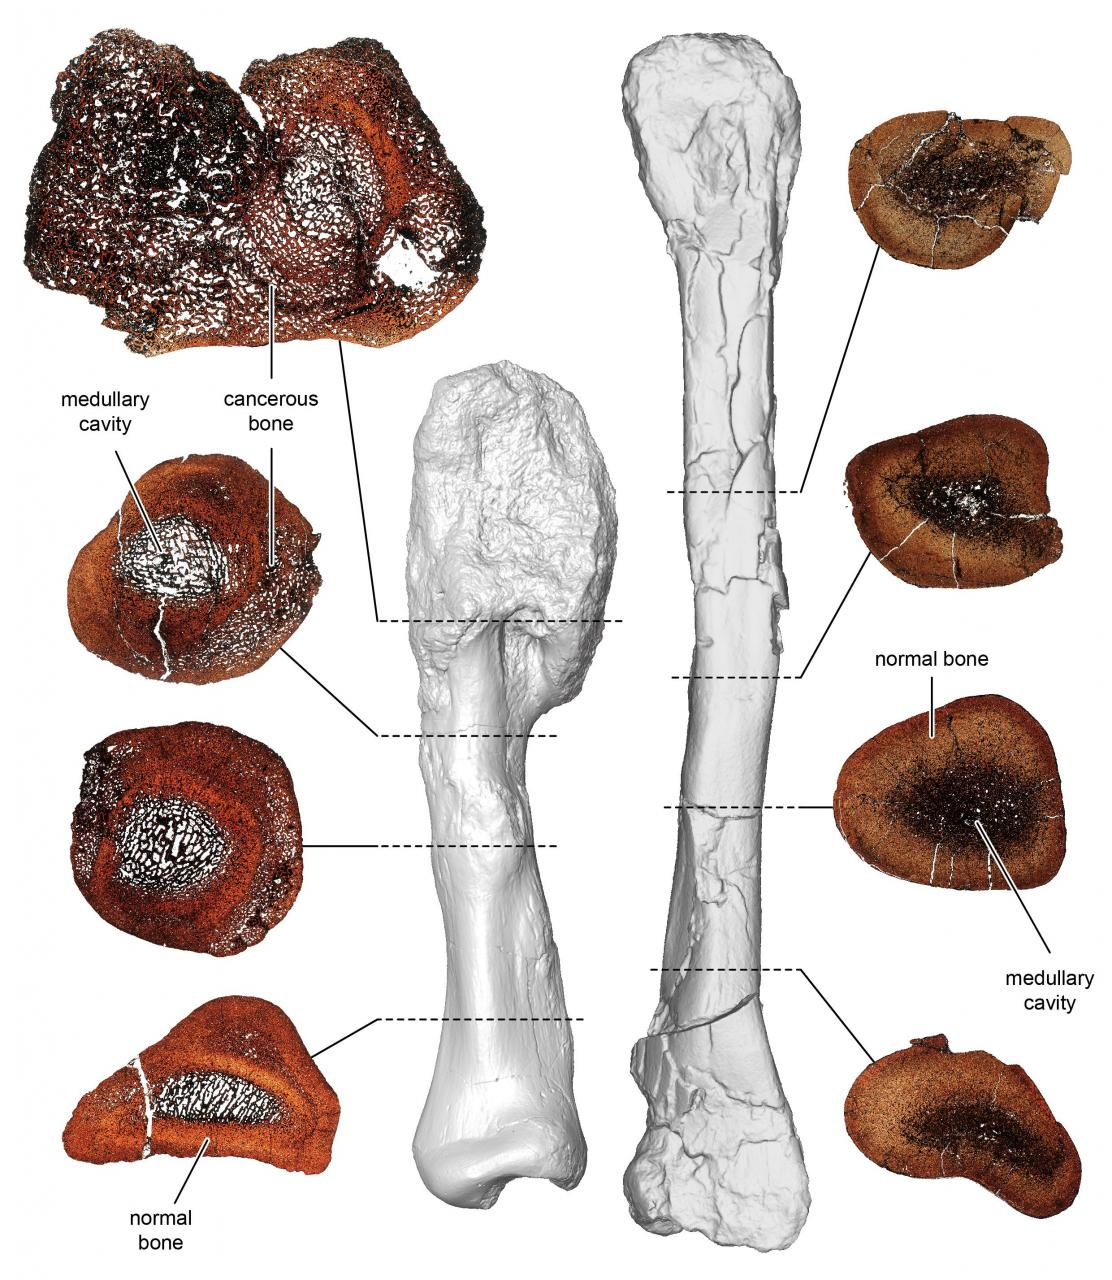 A comparison between thin sections of the cancerous leg bone and normal shin bone of the horned dinosaur Centrosaurus apertus